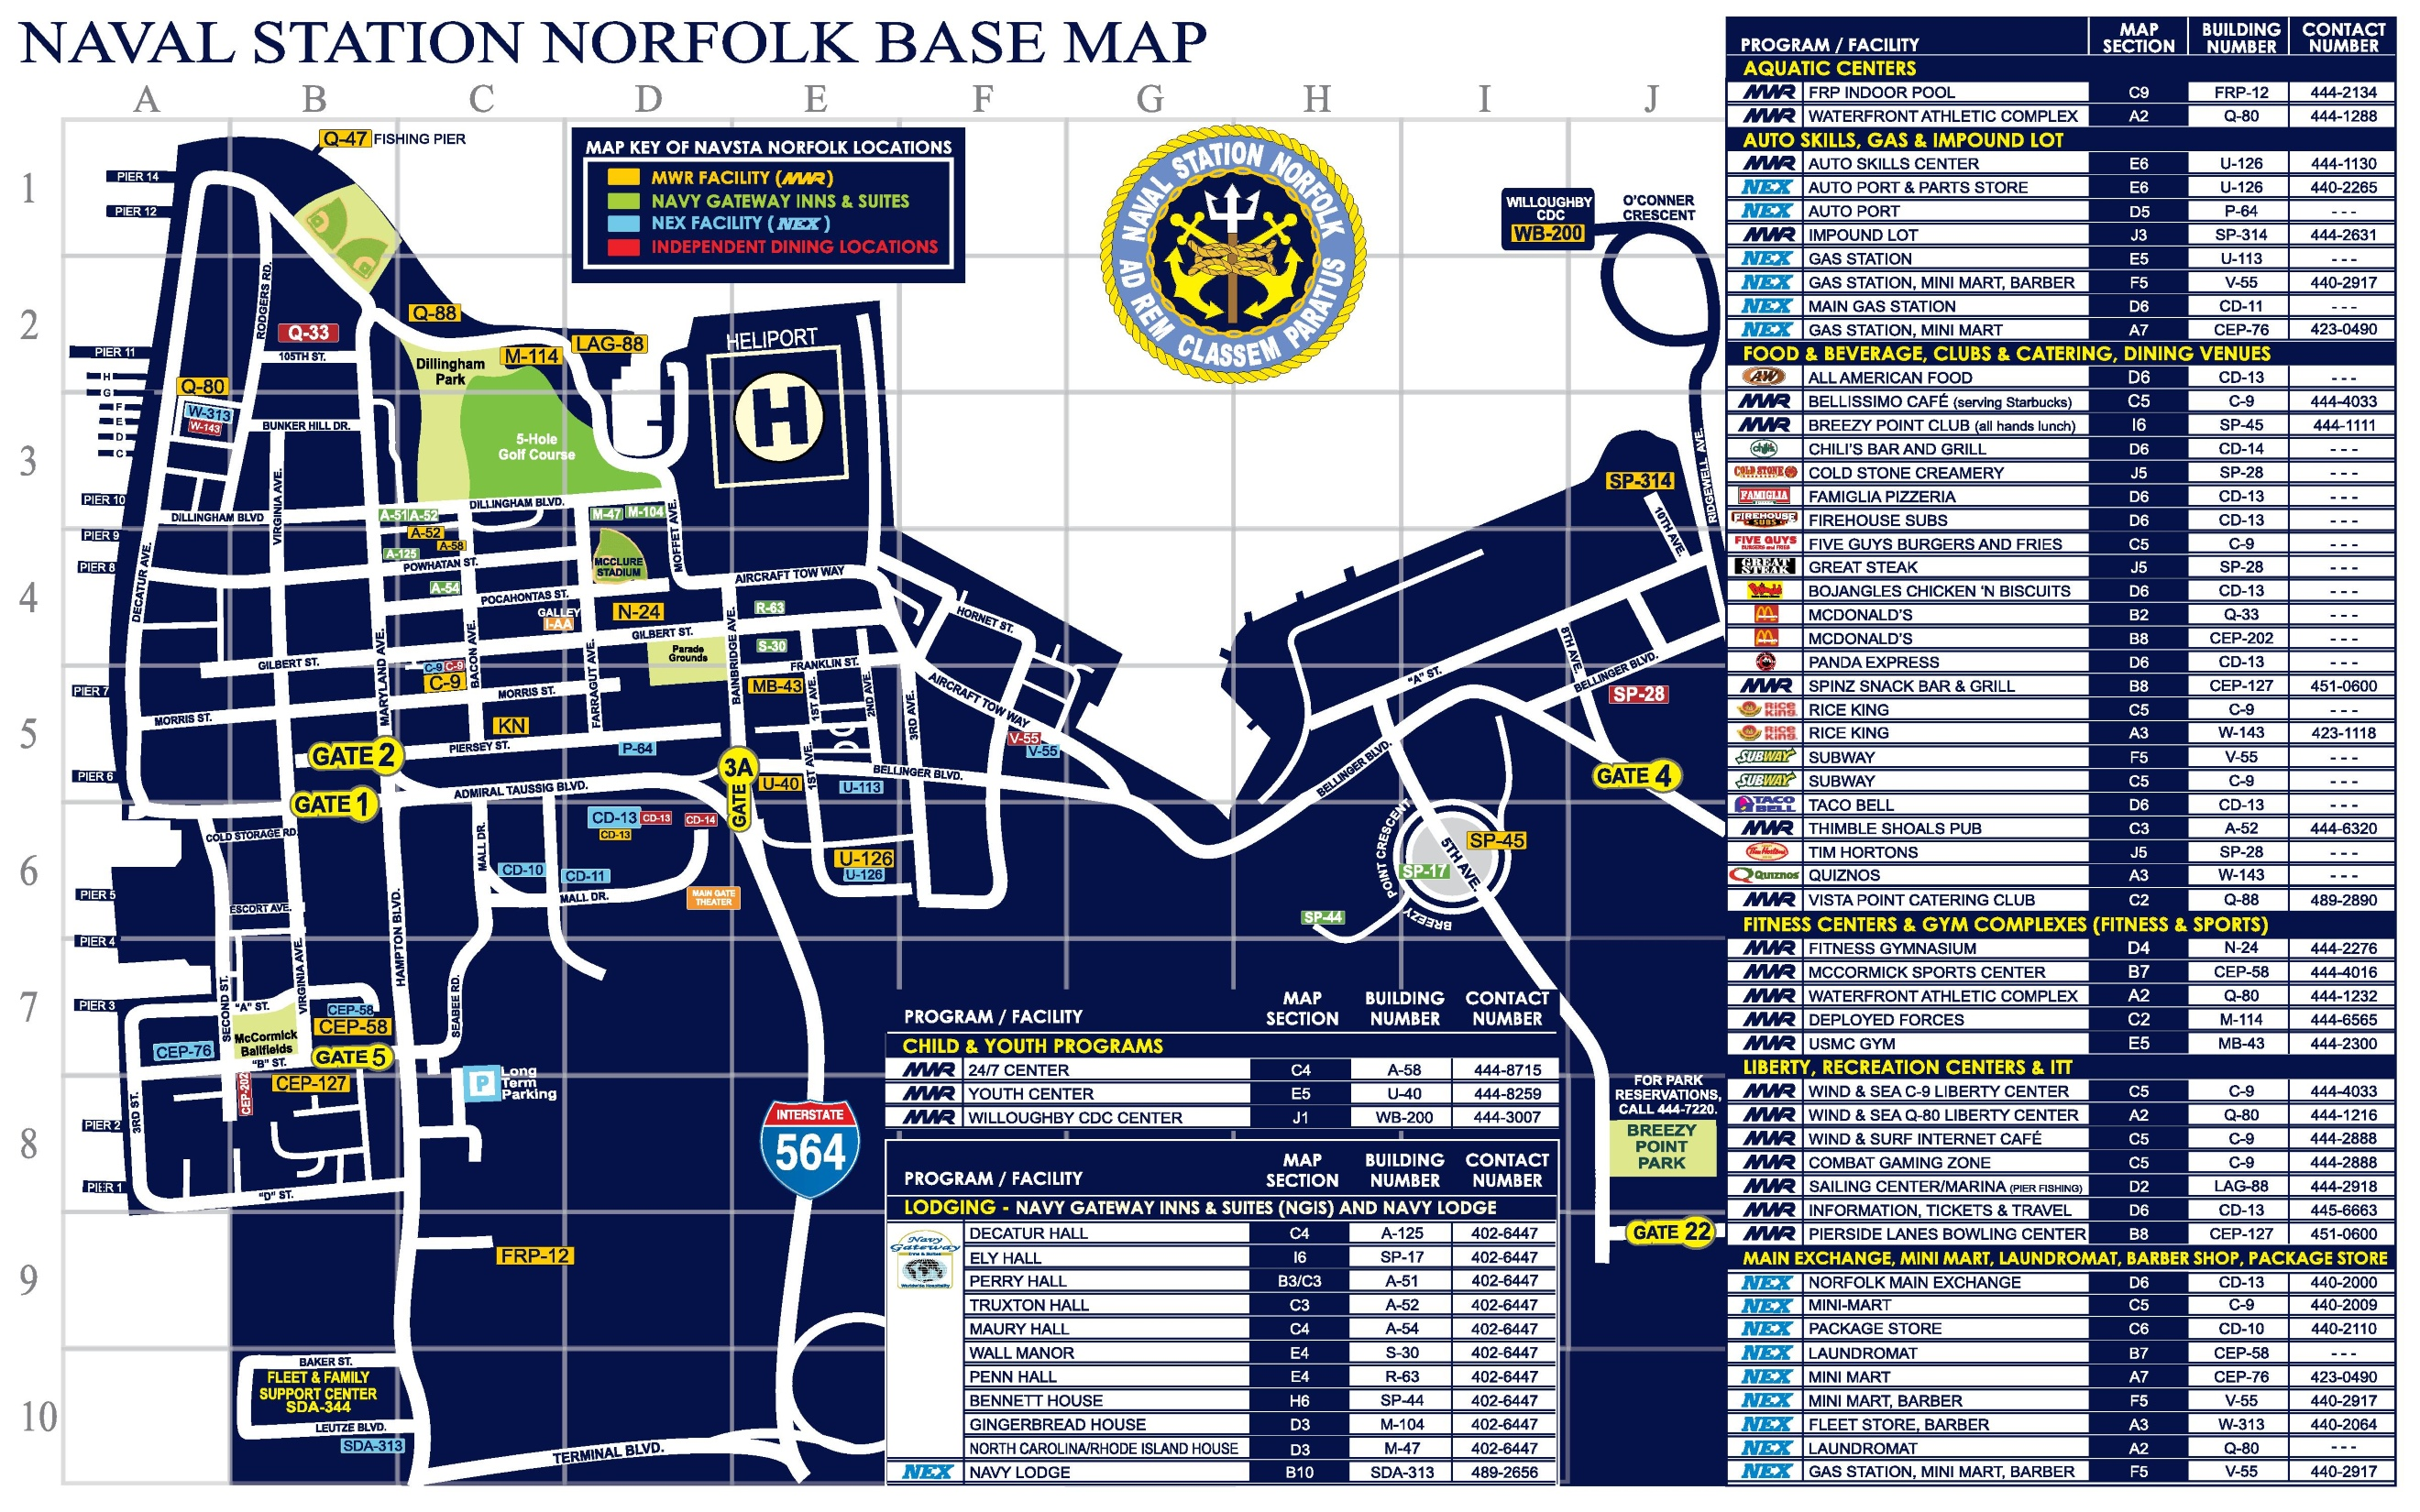 Norfolk Maps | Virginia, U.S. | Maps of Norfolk